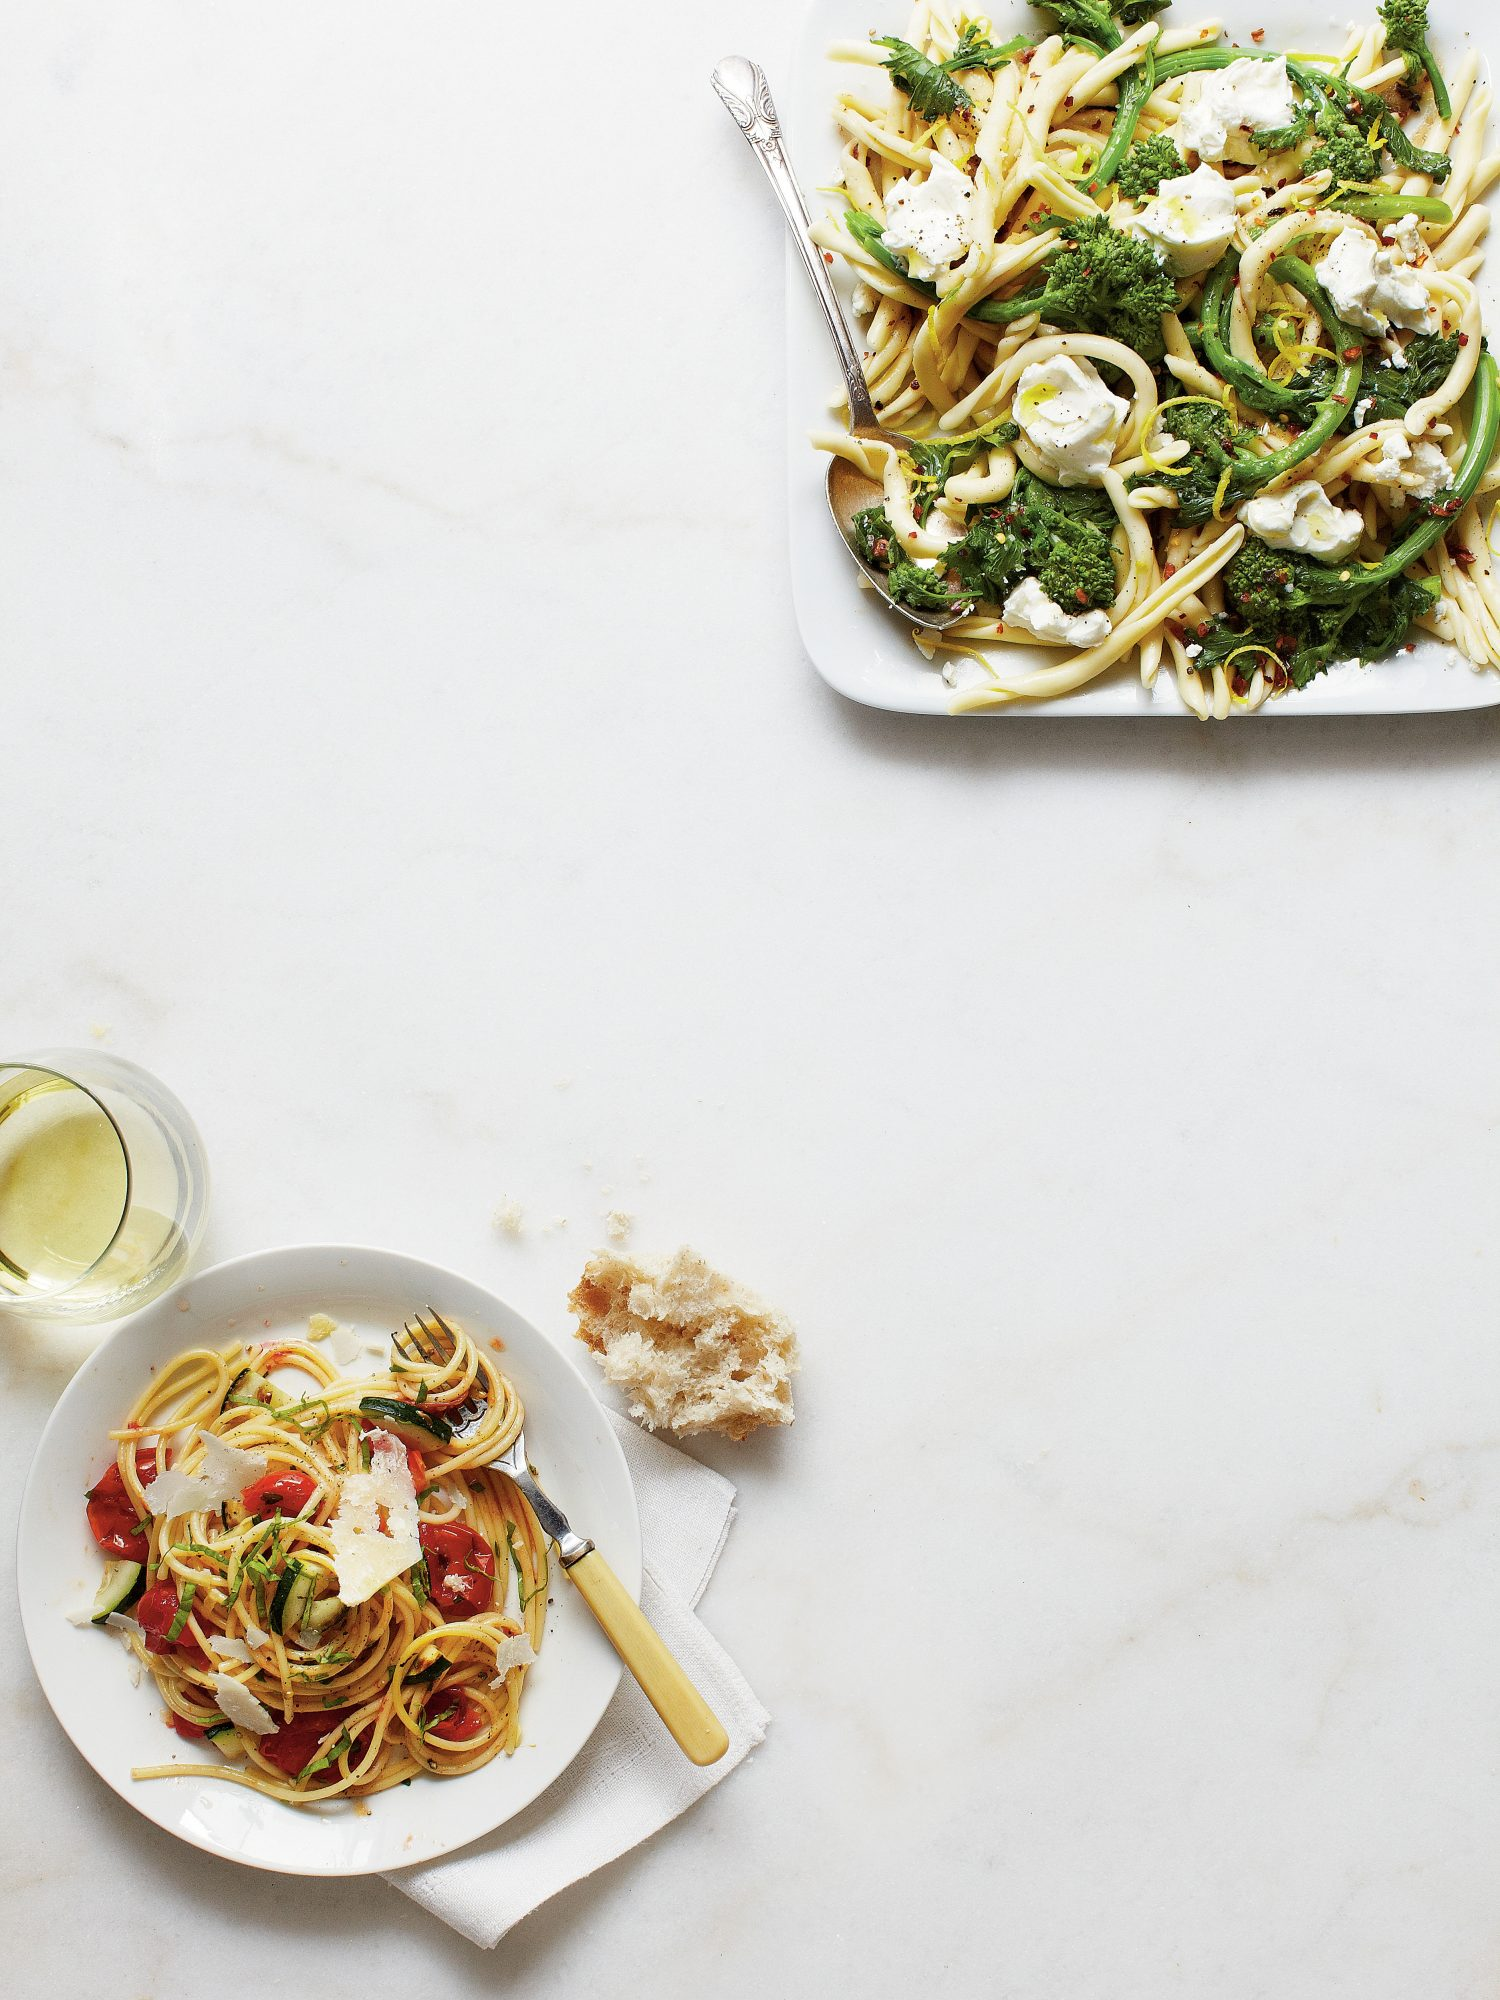 Lemony Broccoli Rabe Pasta